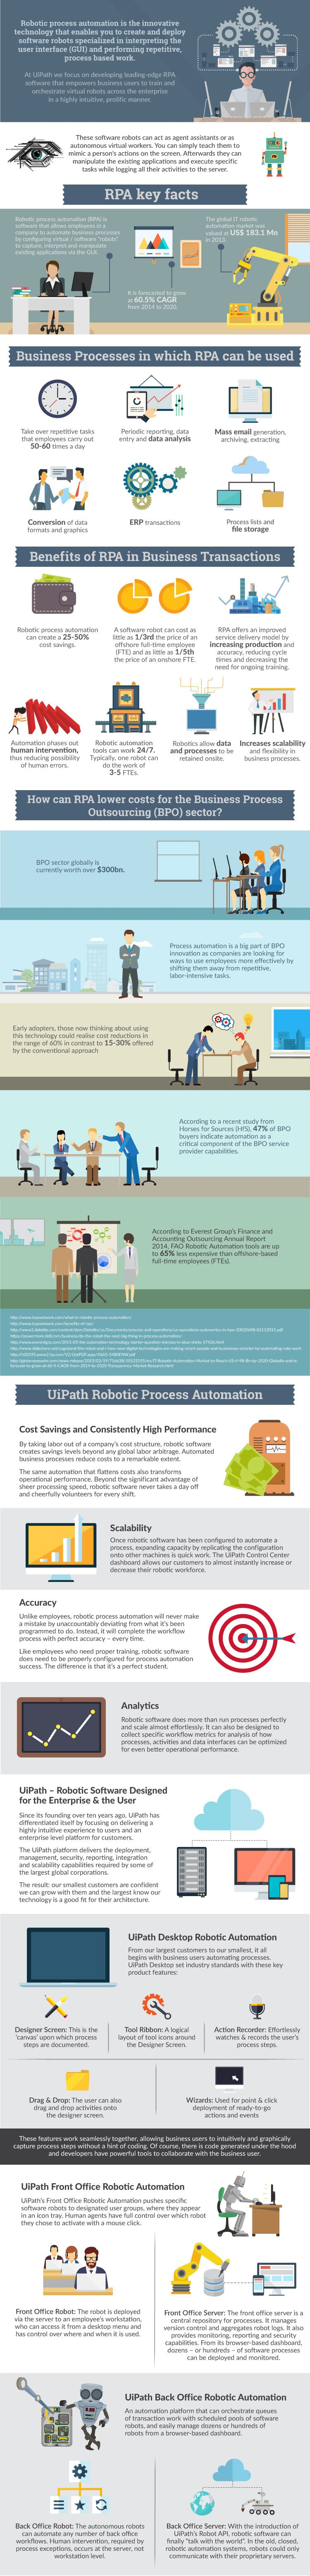 The-Robotic-Process-Automation-Infographic